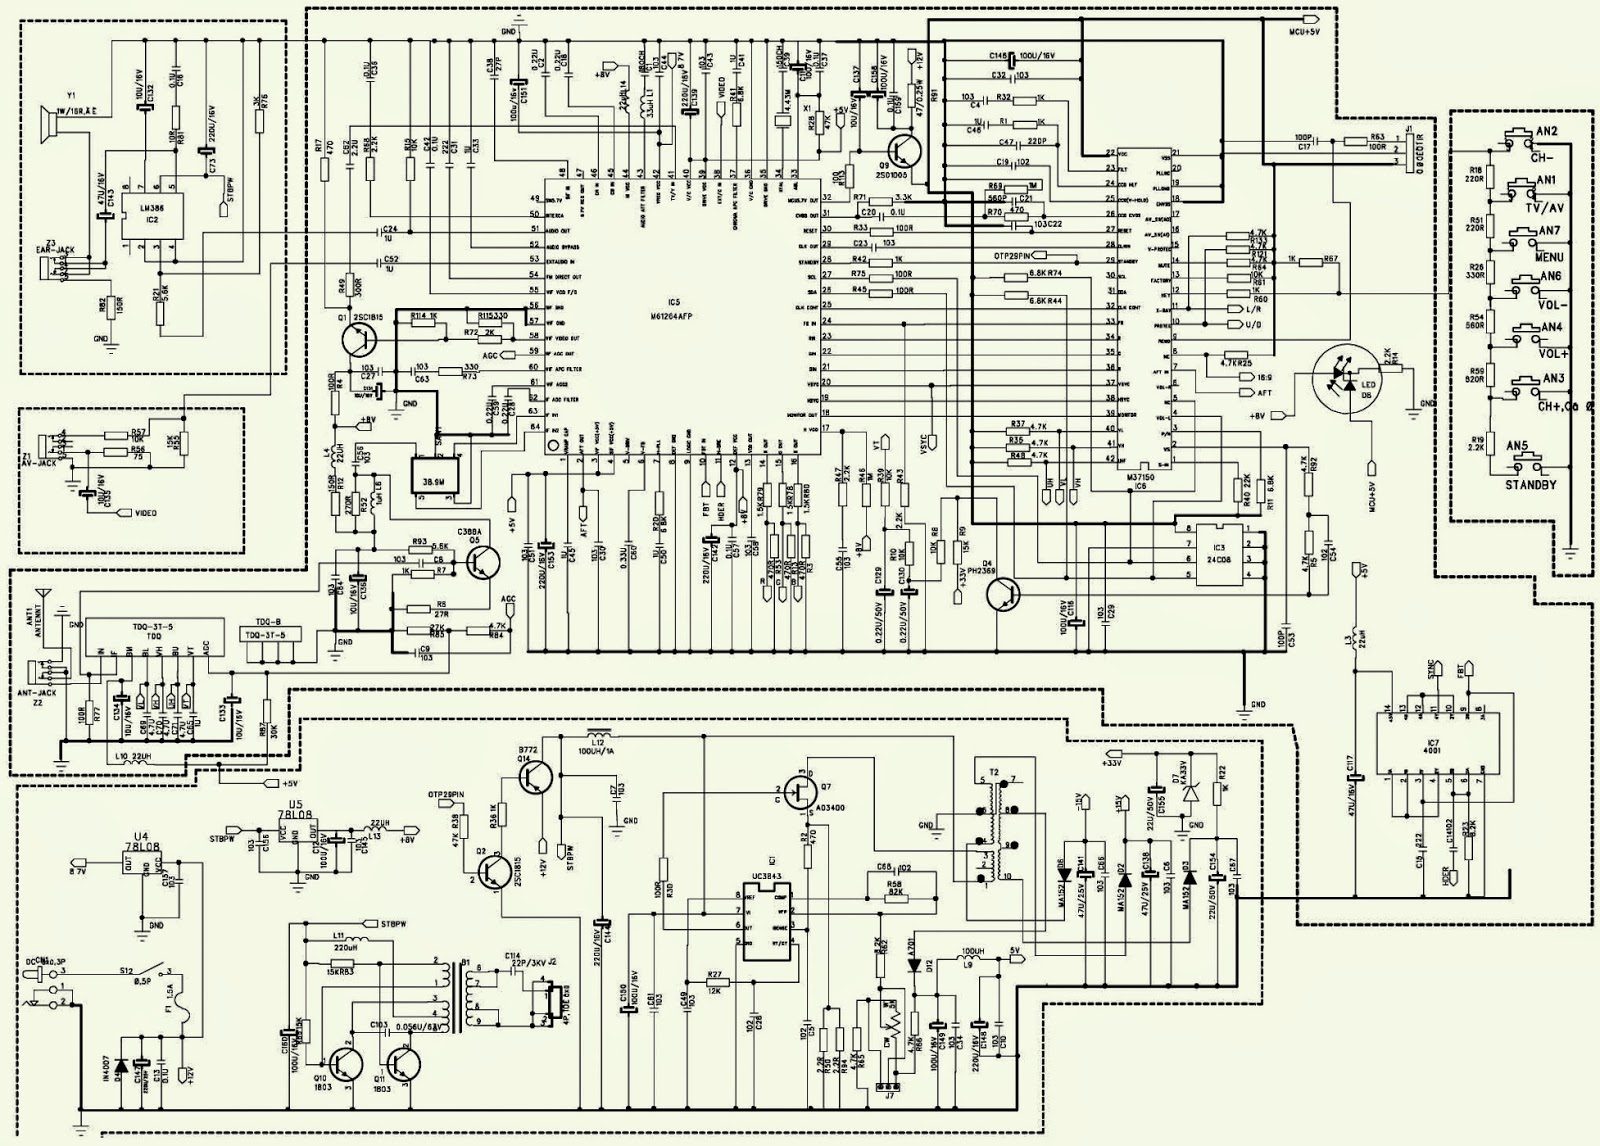 7 inch tft circuit diagram wiring diagram viewhyundai tv 800 7 inch tft lcd tv schematic [ 1600 x 1146 Pixel ]